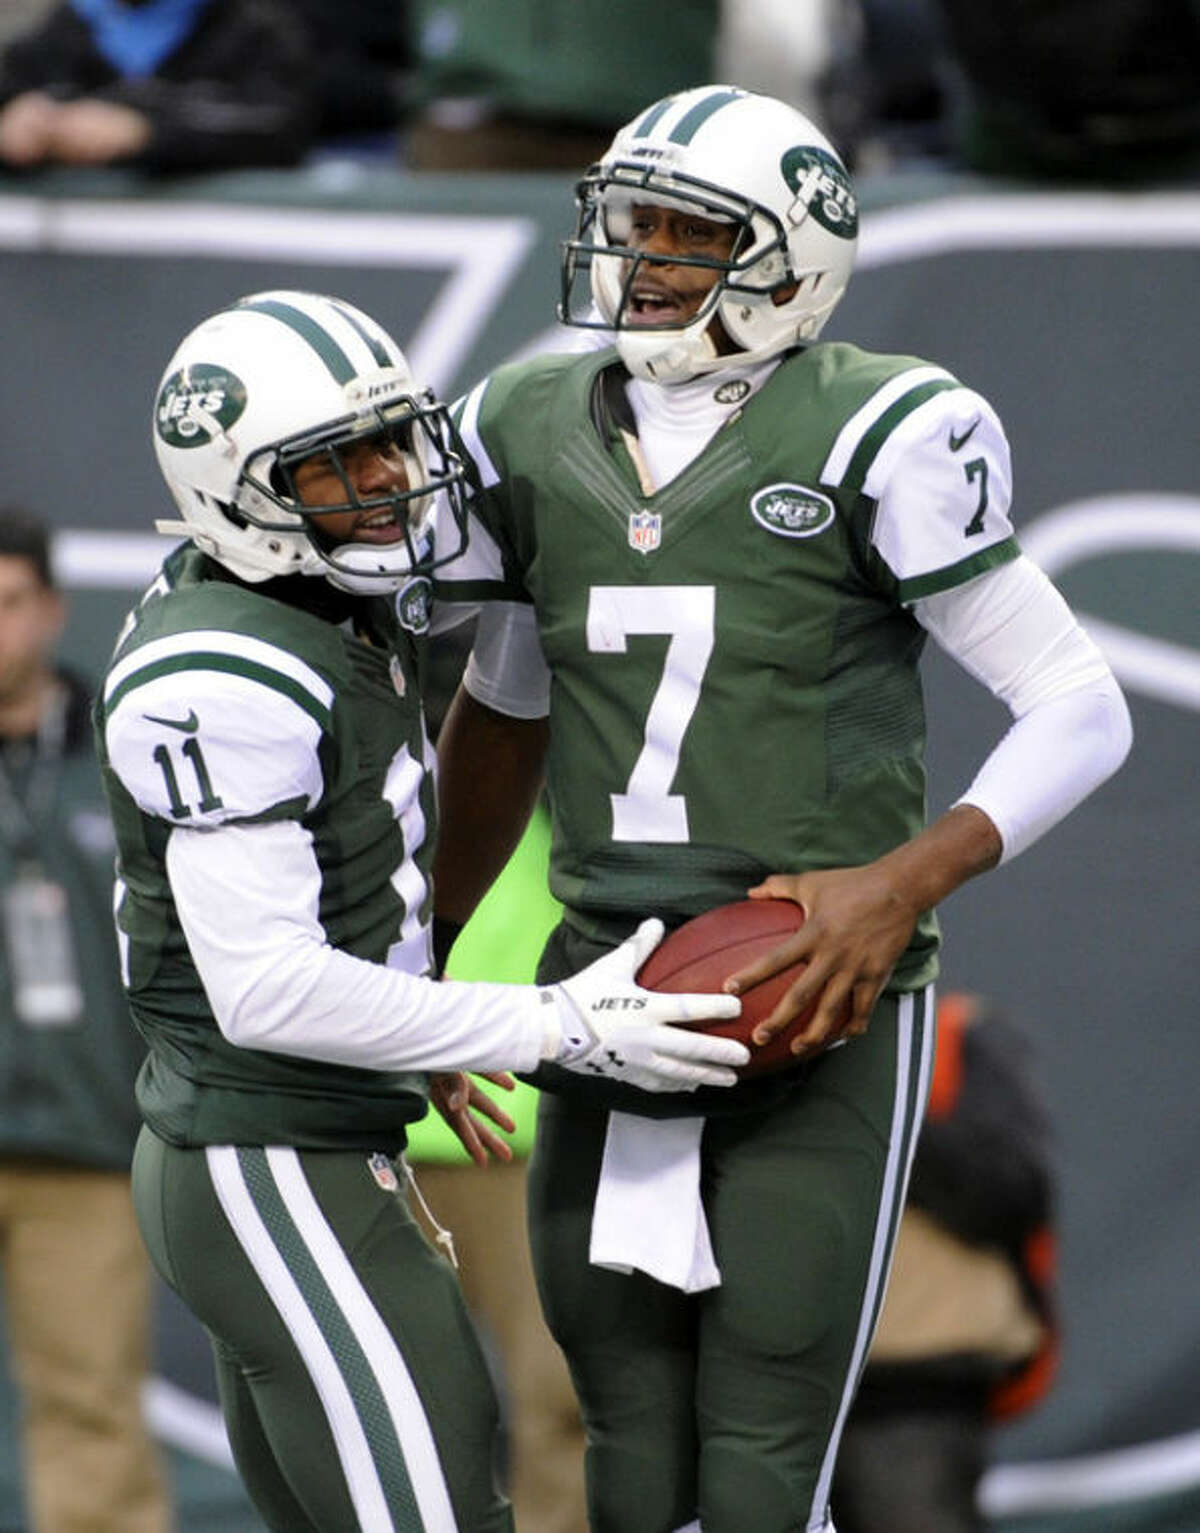 New York Jets quarterback Geno Smith (7) is congratulated by wide receiver Jeremy Kerley (11) after Smith scored on a touchdown run against the Oakland Raiders during the second half of an NFL football game, Sunday, Dec. 8, 2013, in East Rutherford, N.J. (AP Photo/Bill Kostroun)